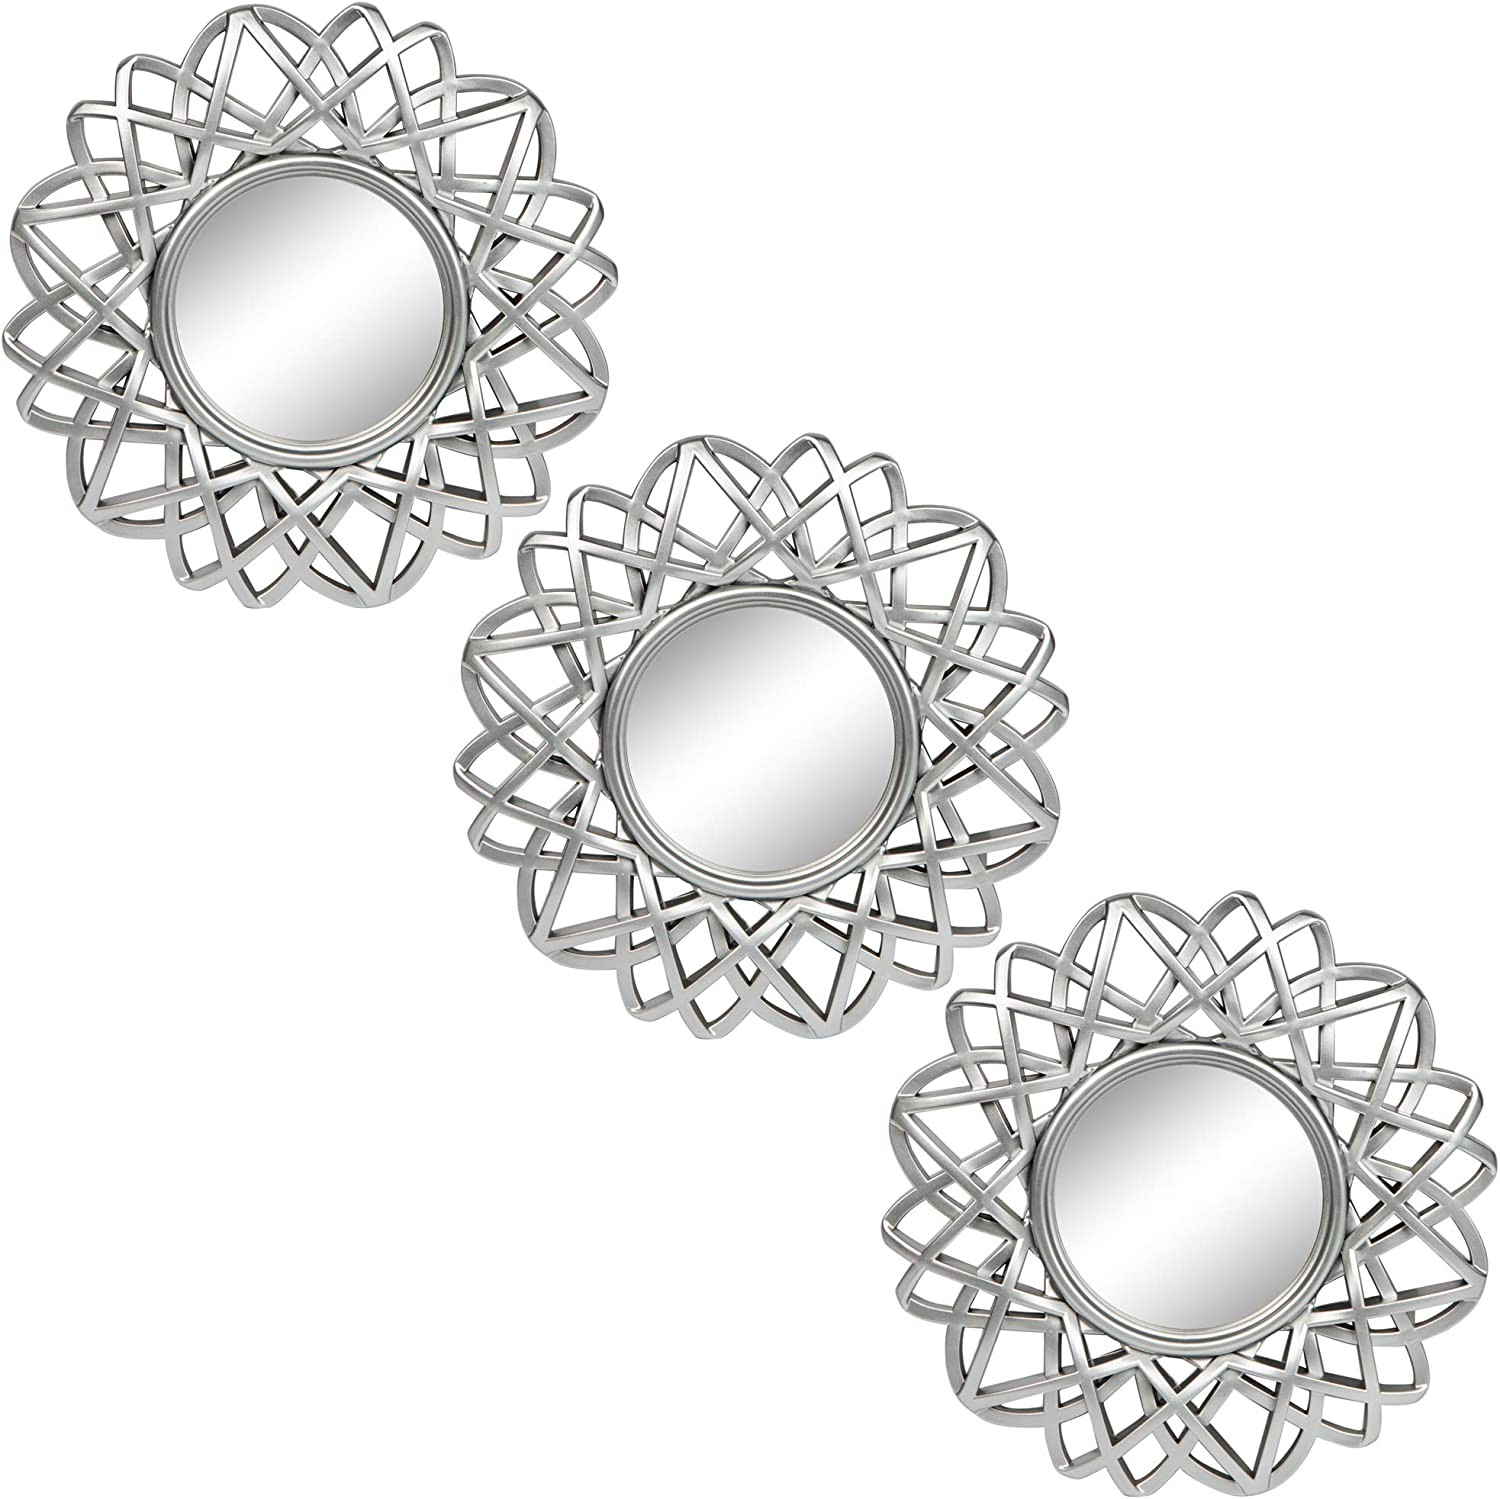 Small Round Mirrors for Wall Decor Set of 3 - Great Home Accessories for Bedroom, Living Room & Dinning Room (M005)